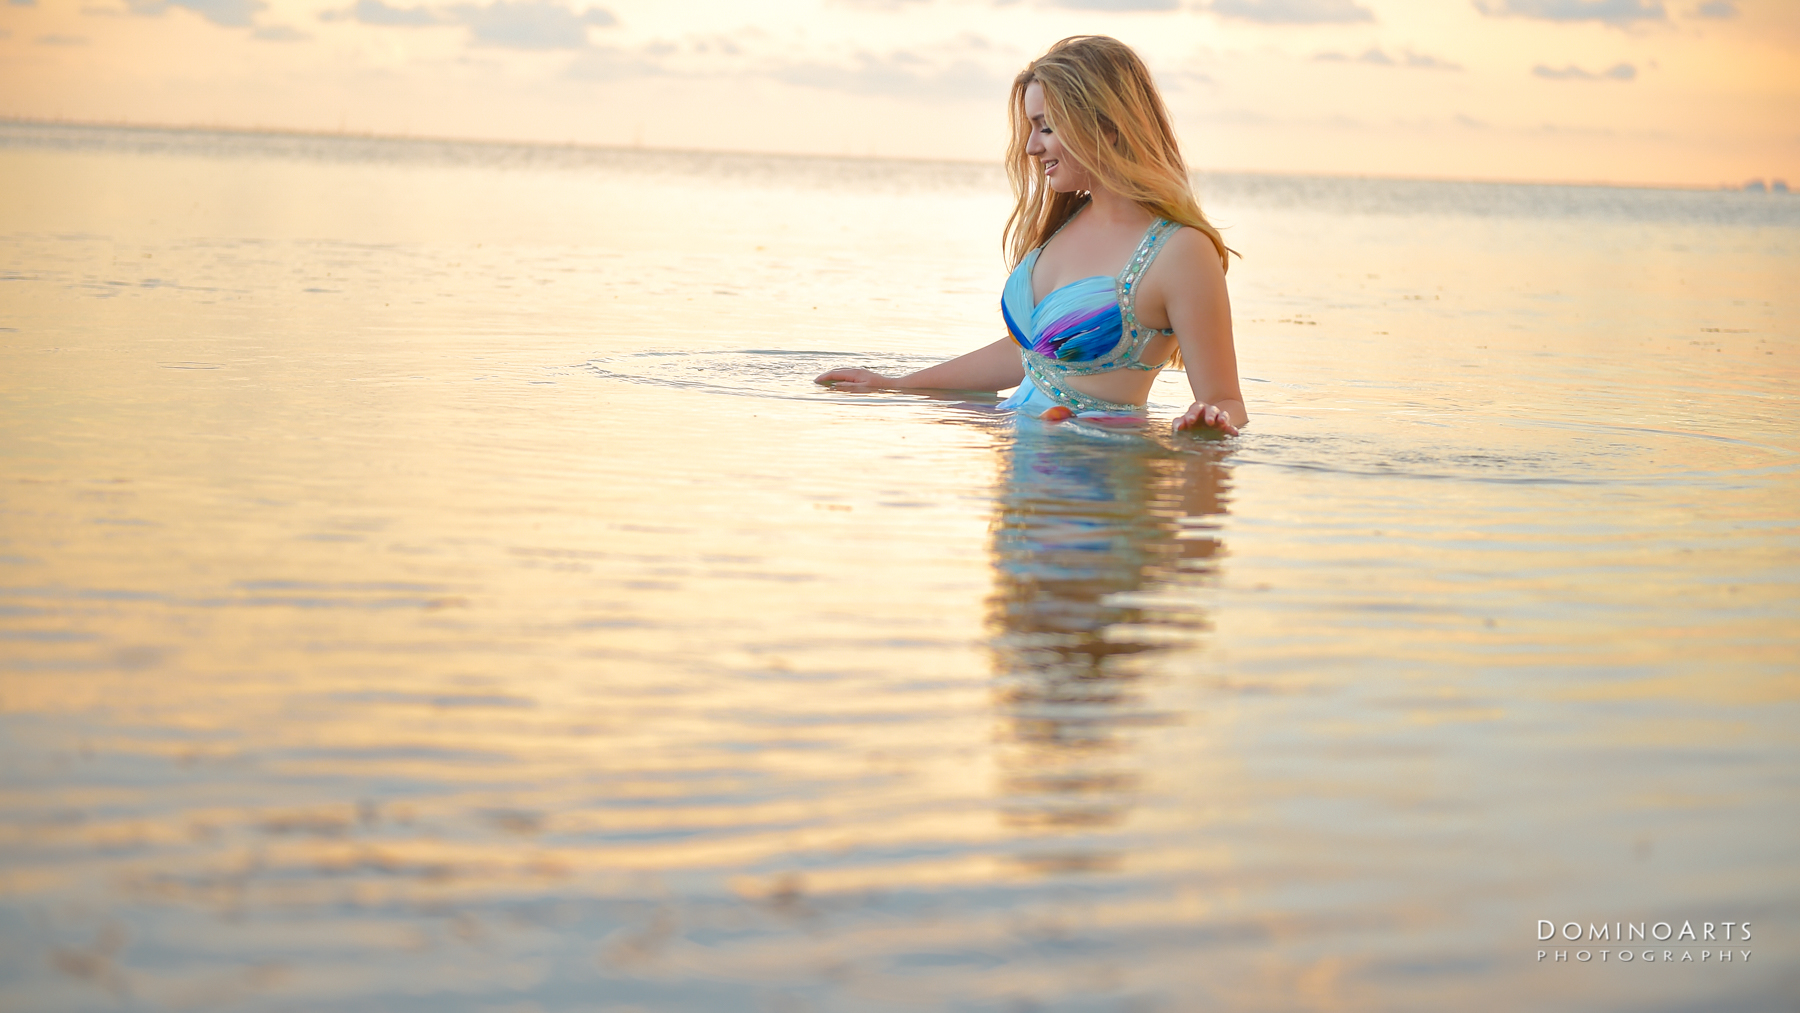 Playing in water model luxury photography south beach miami